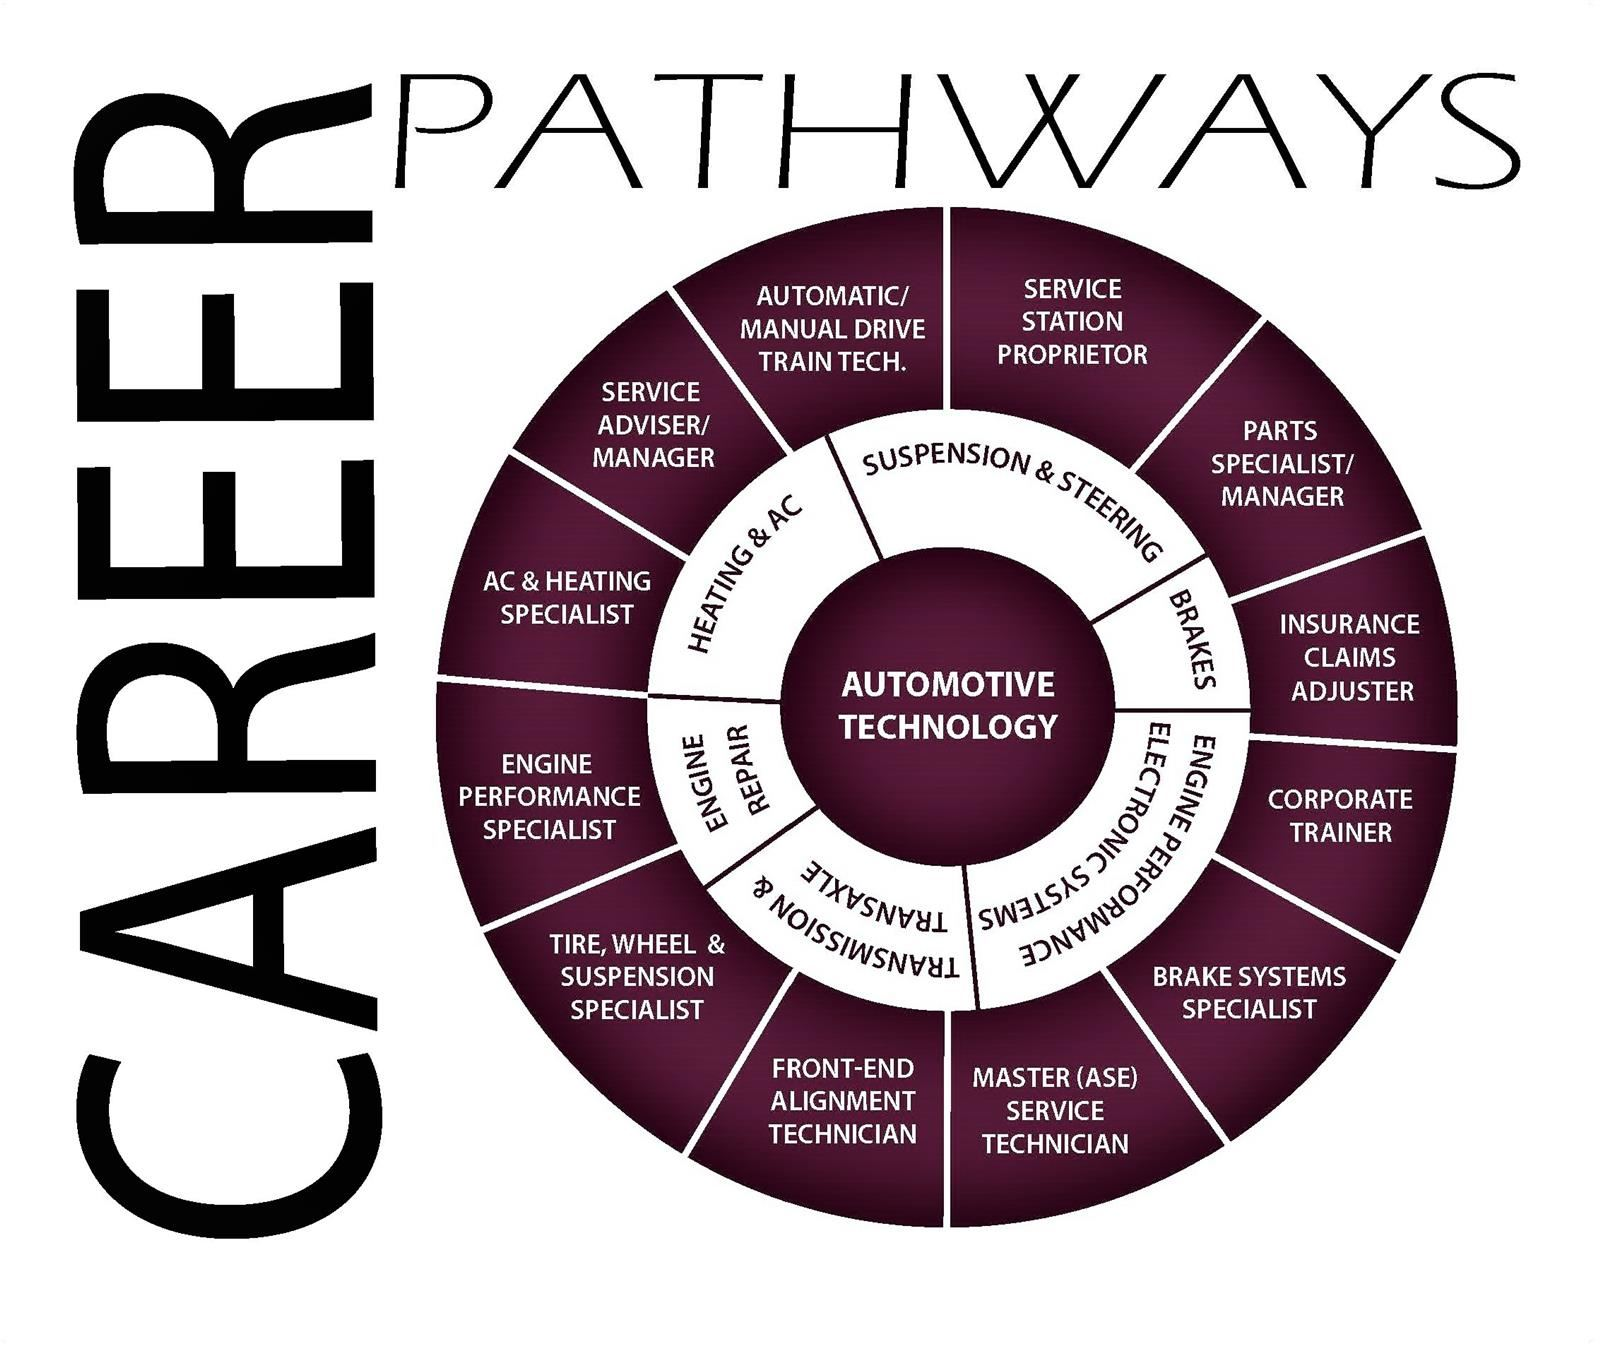 Career Pathway Wheel for Automotive